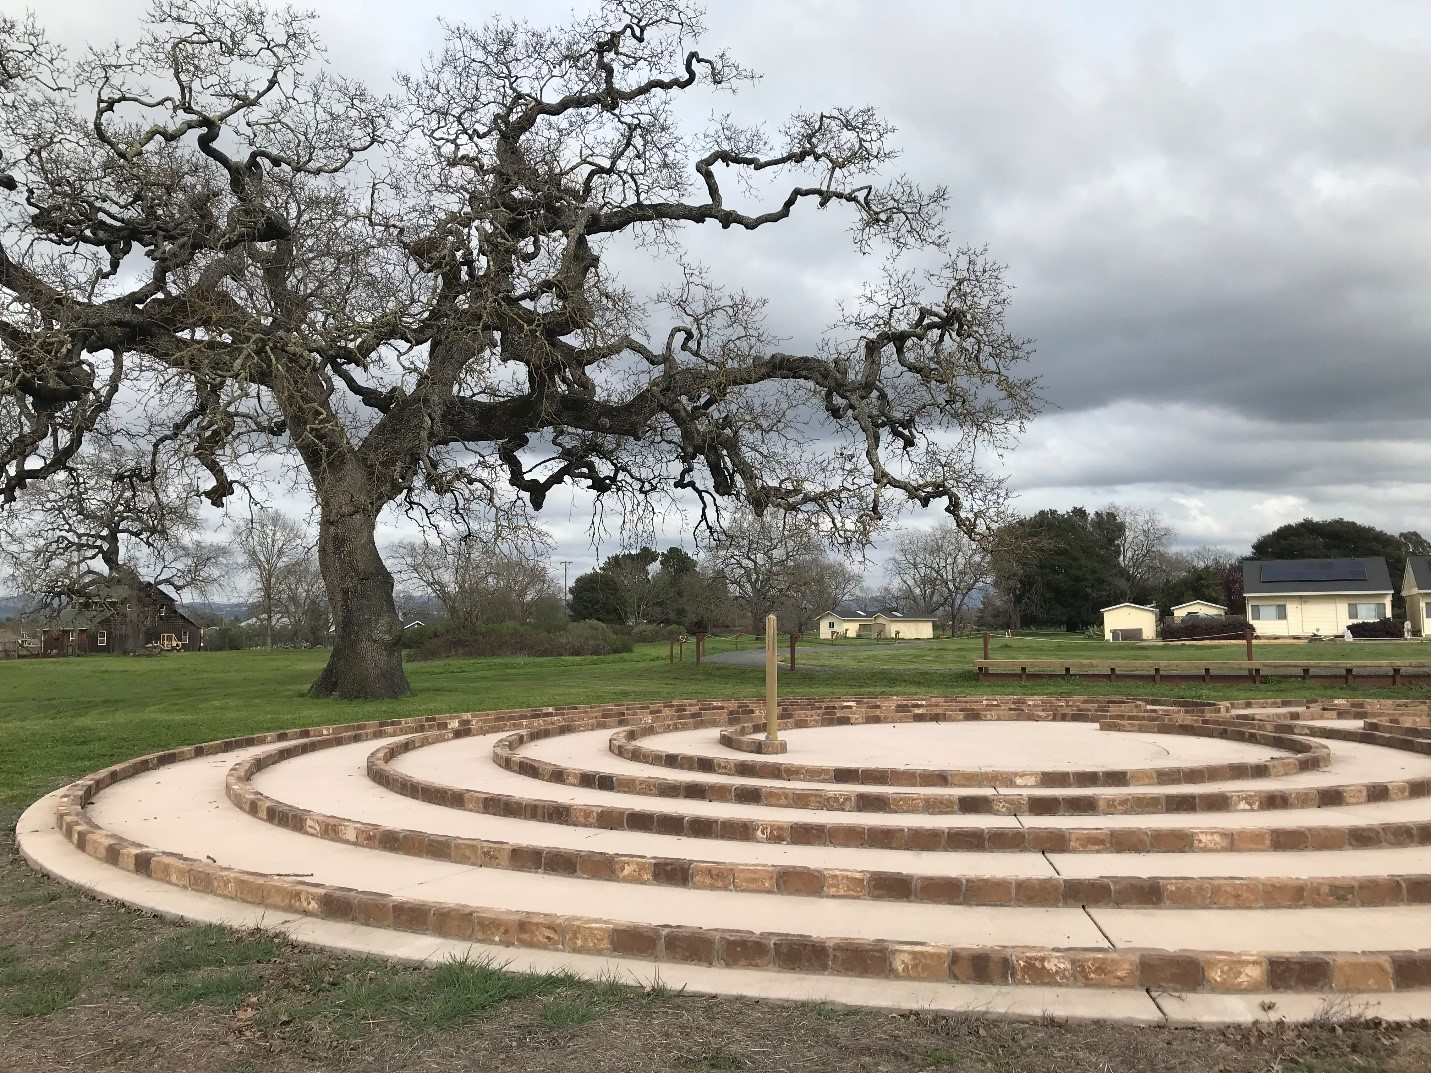 on a cloudy day standing at the far side of the labyrinth with the leaf-less oak on our left we see the labyrinth